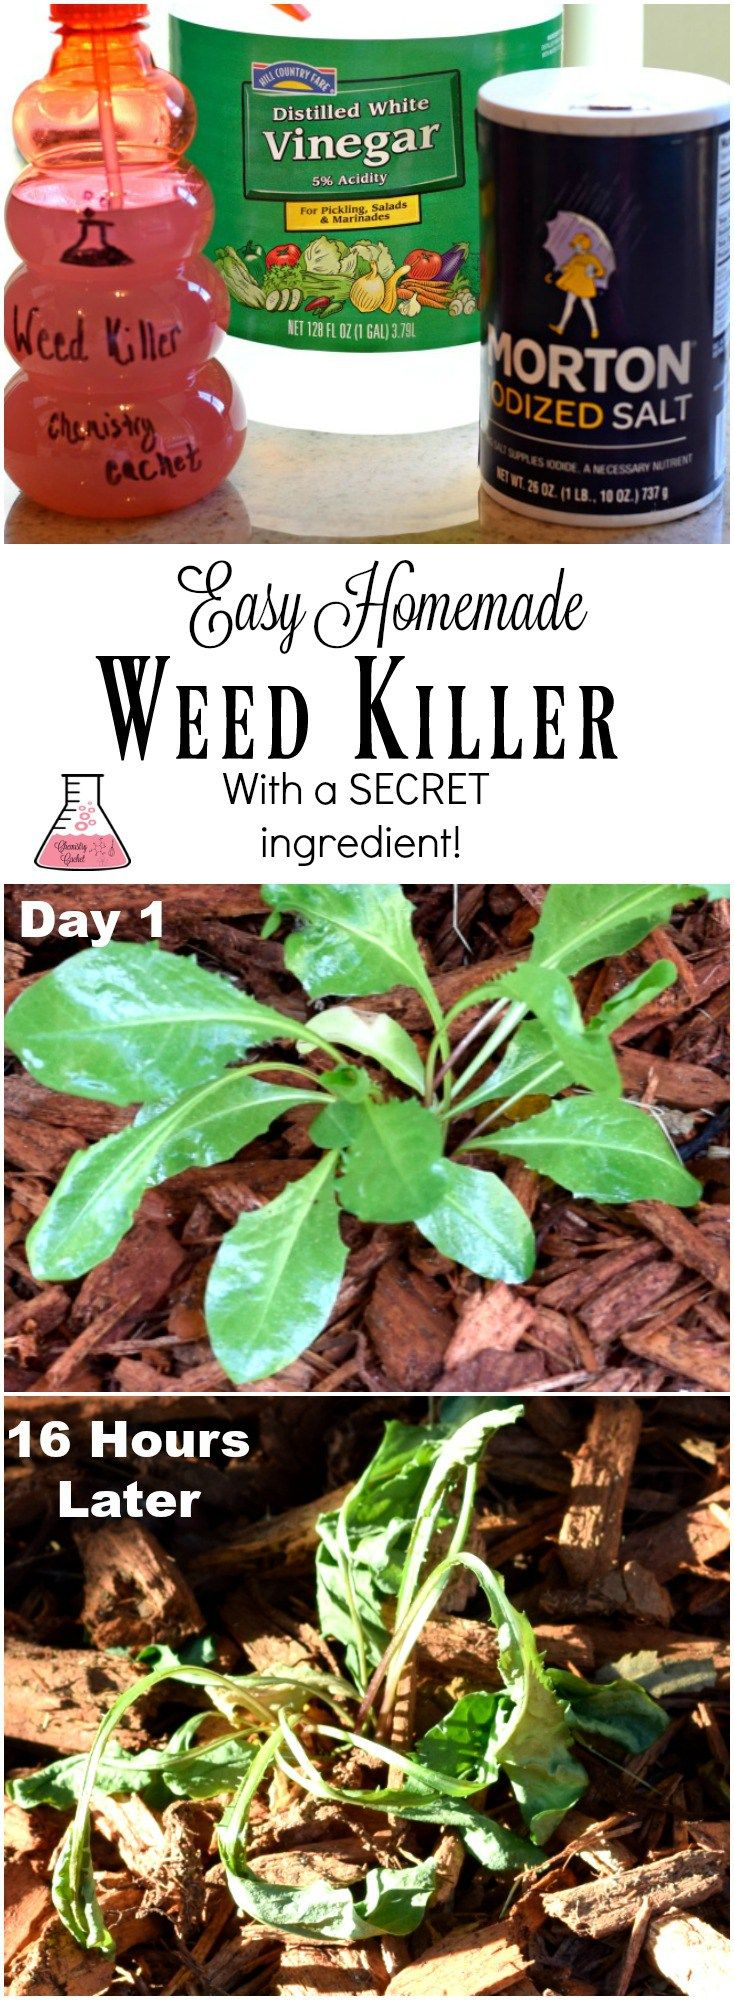 Kill weeds in flower beds - Easy Homemade Weed Killer With Secret Ingredient